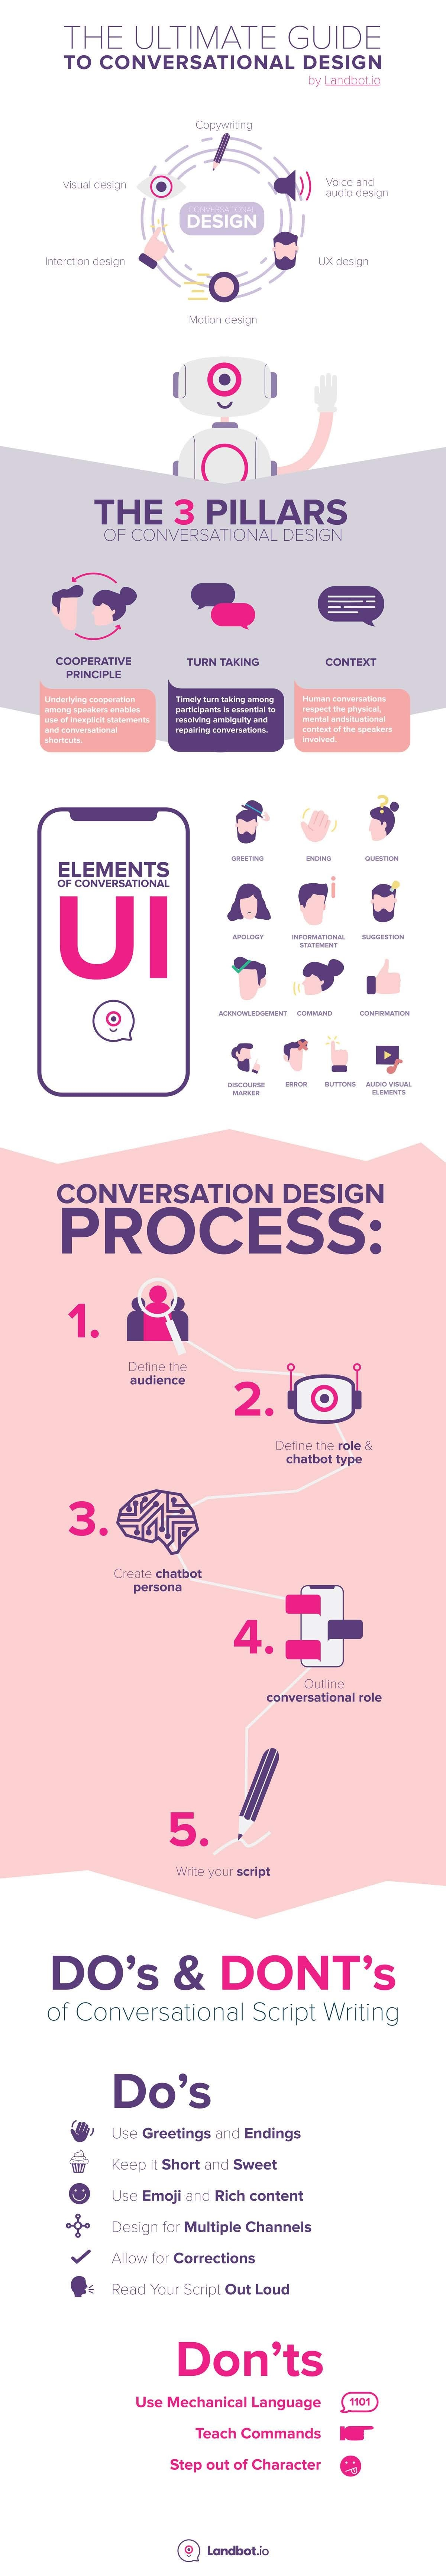 The Ultimate Guide to Conversational Design #infographic